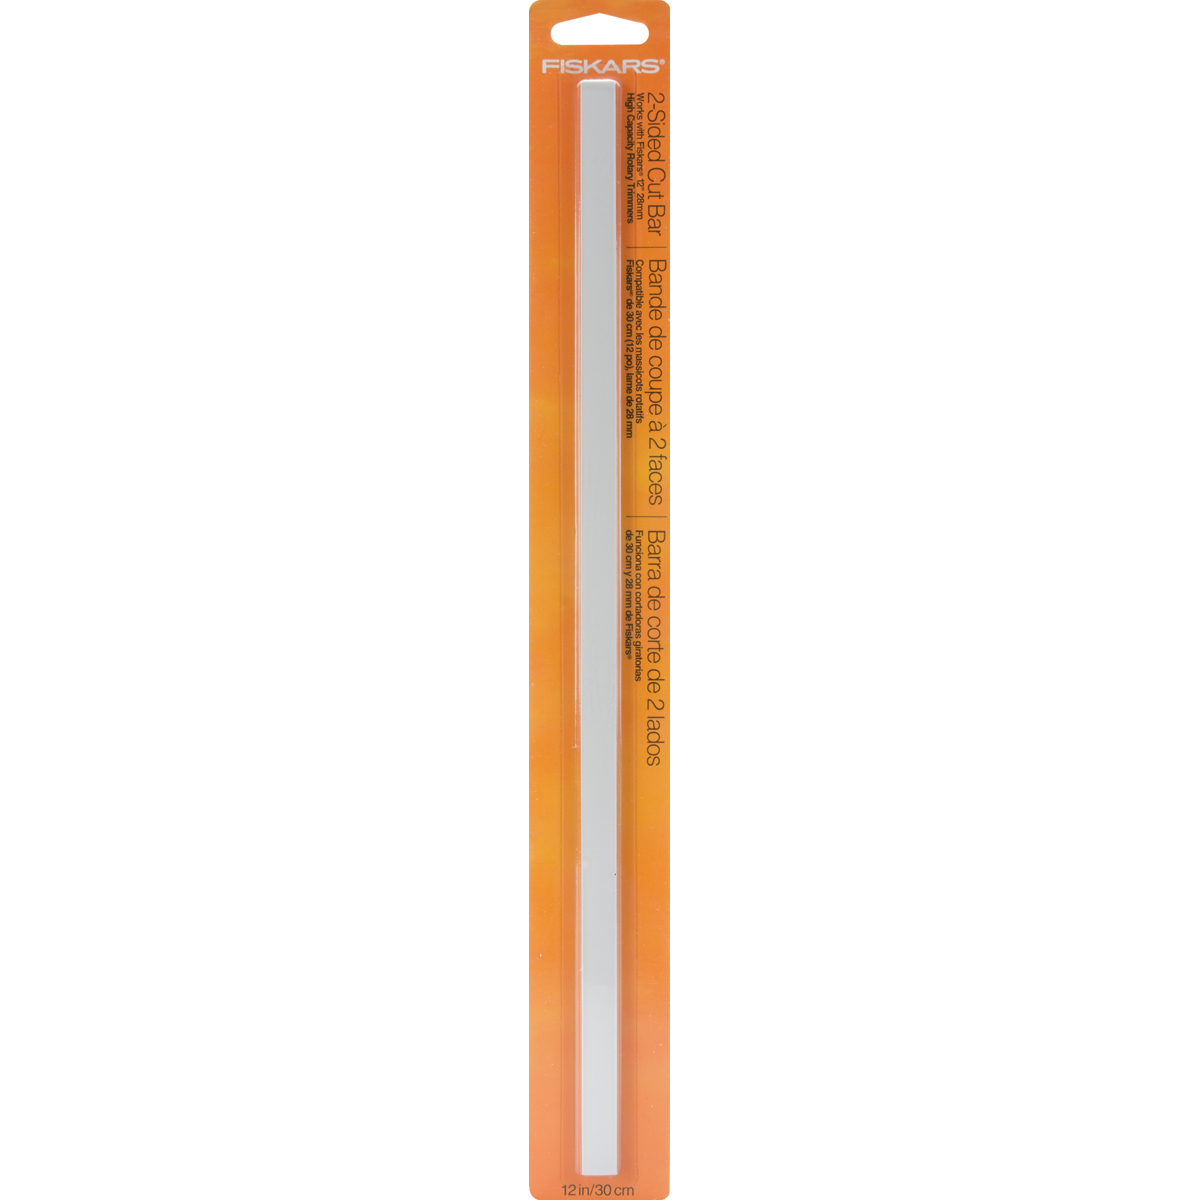 "F9660 Fiskars Rotary Trimmer 2-Sided Cutting Bar 12/""-28mm"